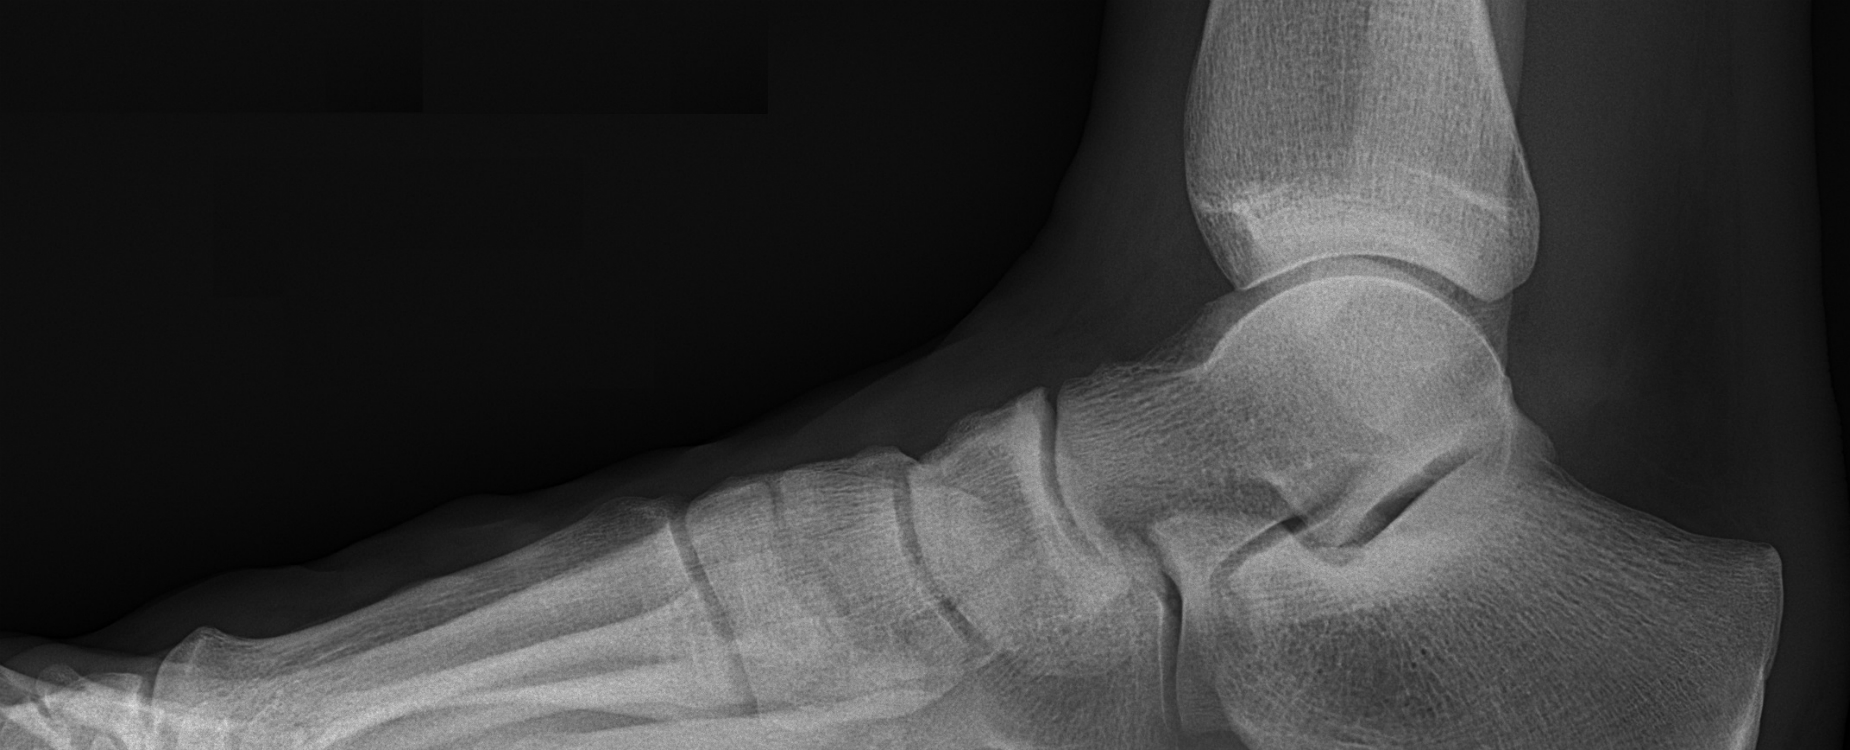 X Ray of ankle